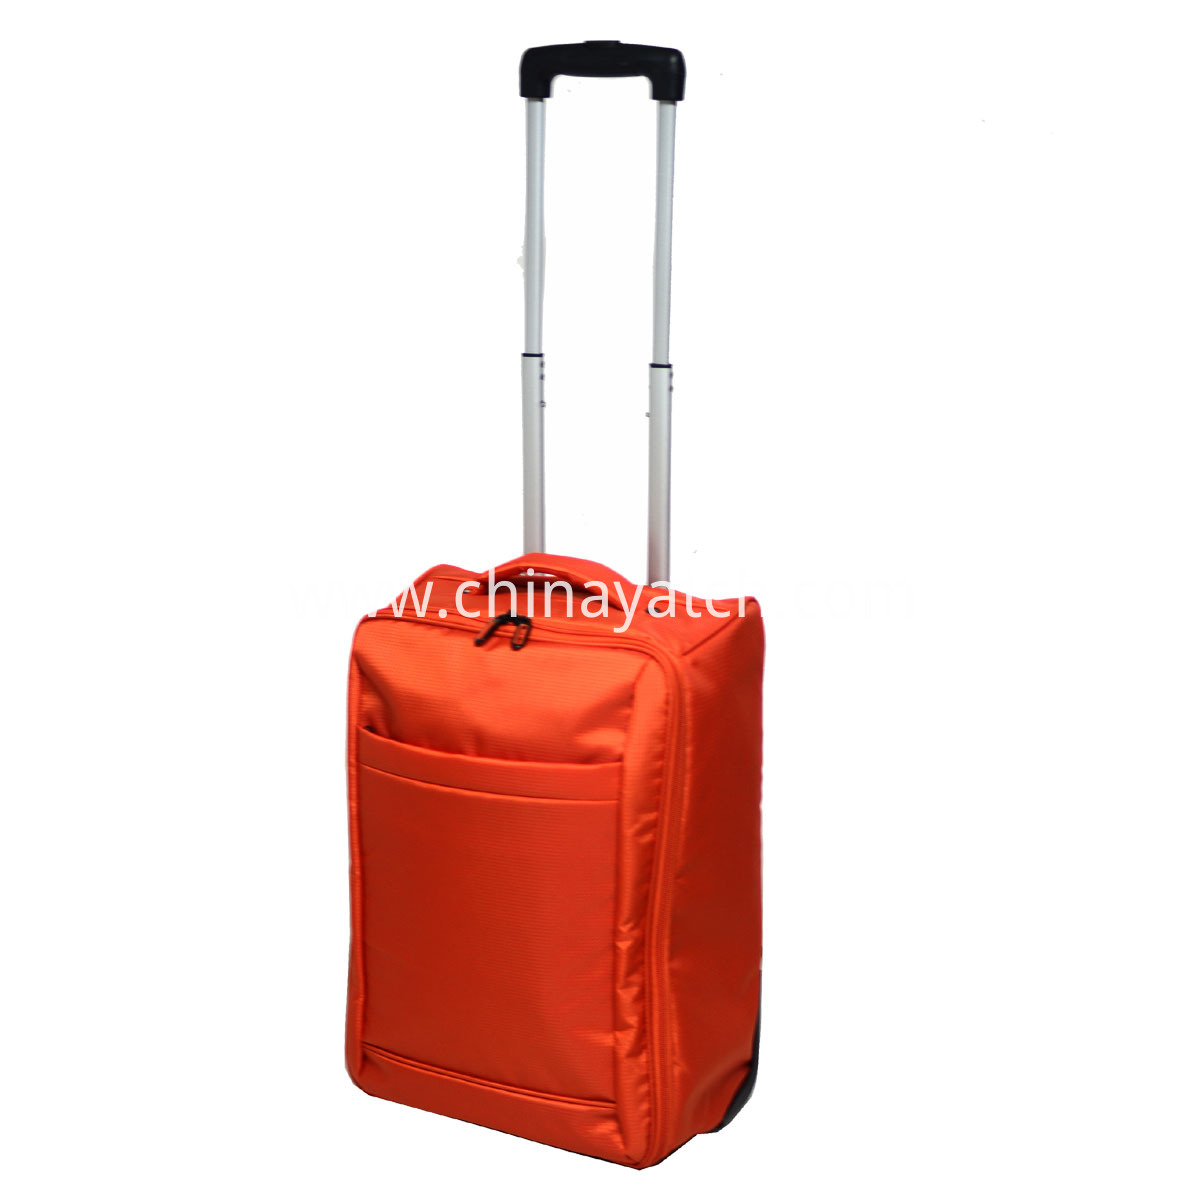 Promotion Price Foldway Suitcase